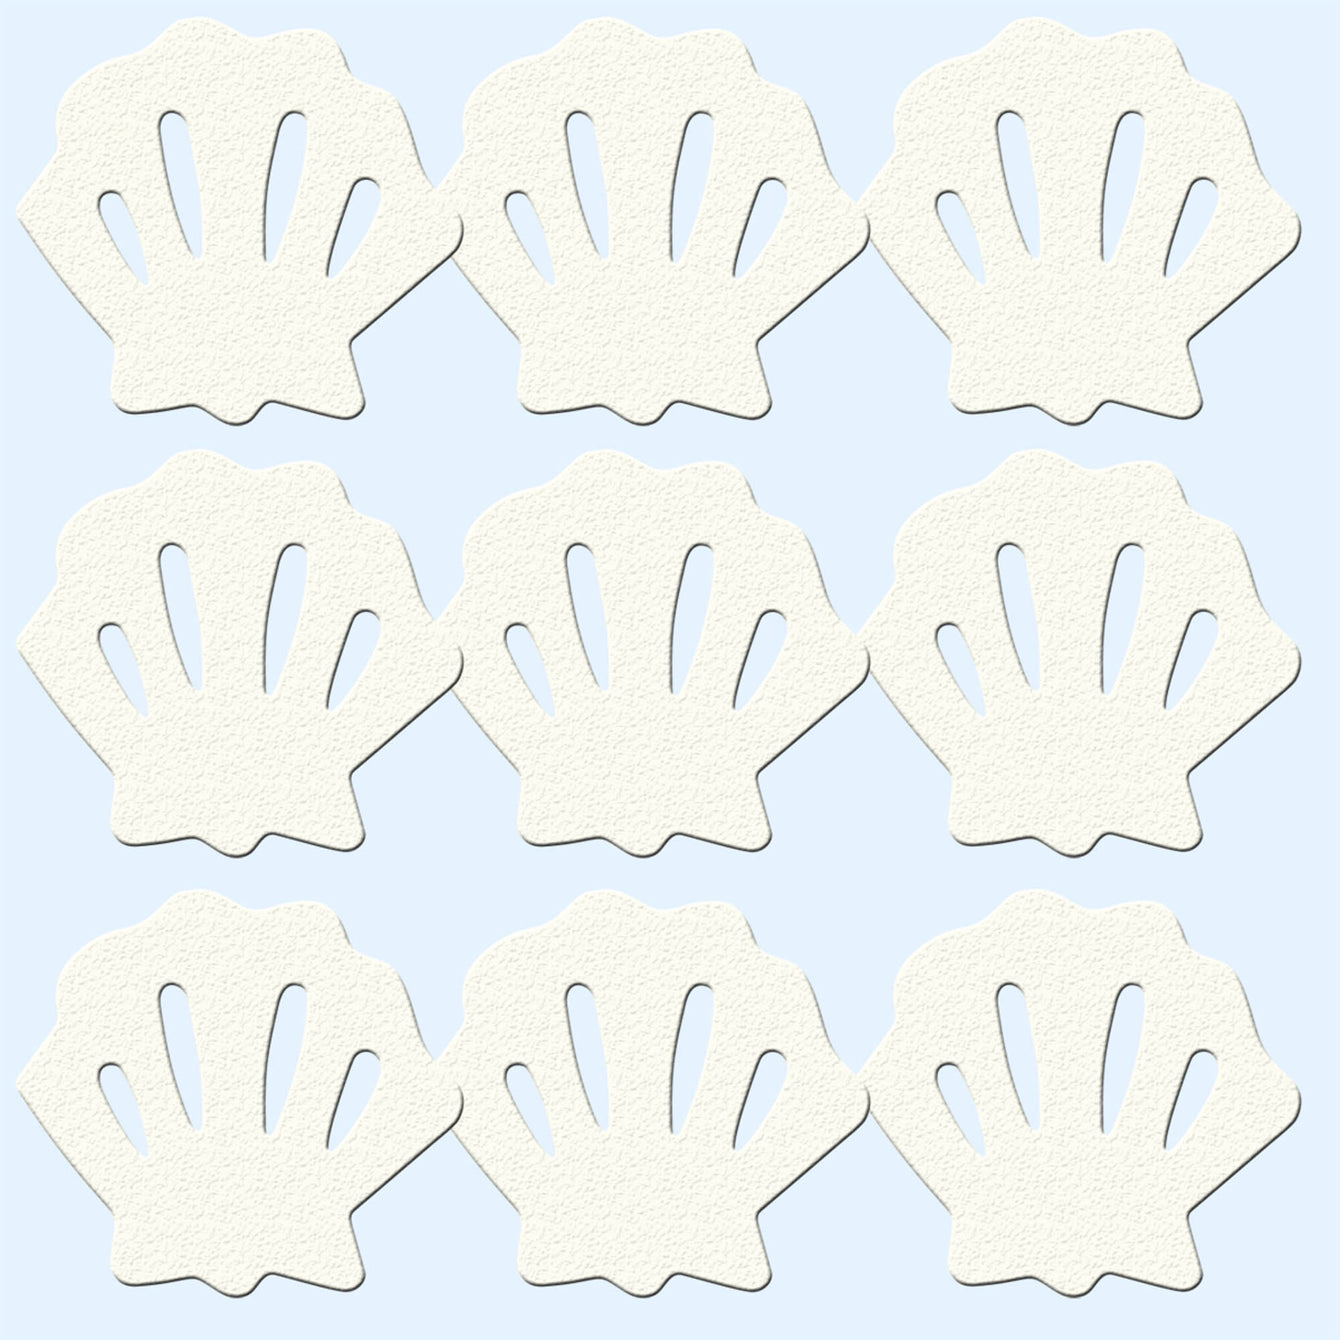 TrimSil Non Slip Sea Shells Bath and Shower Safety Aid 90mm x 75mm max Pack of 9 - Buy It Better